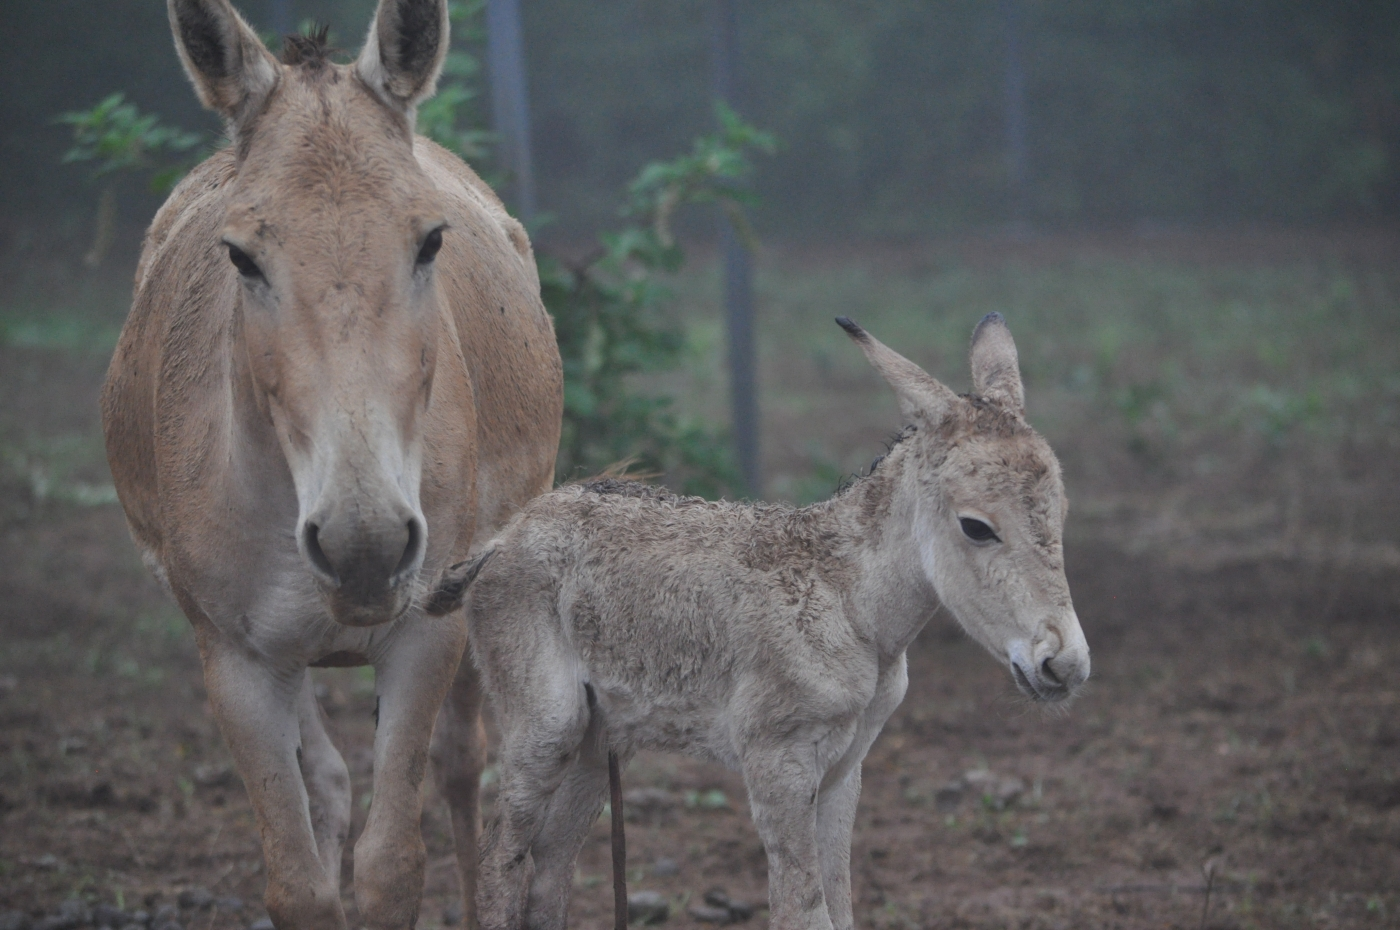 A Persian onager foal (R) stands next to its mother (L) at the Smithsonian Conservation Biology Institute.